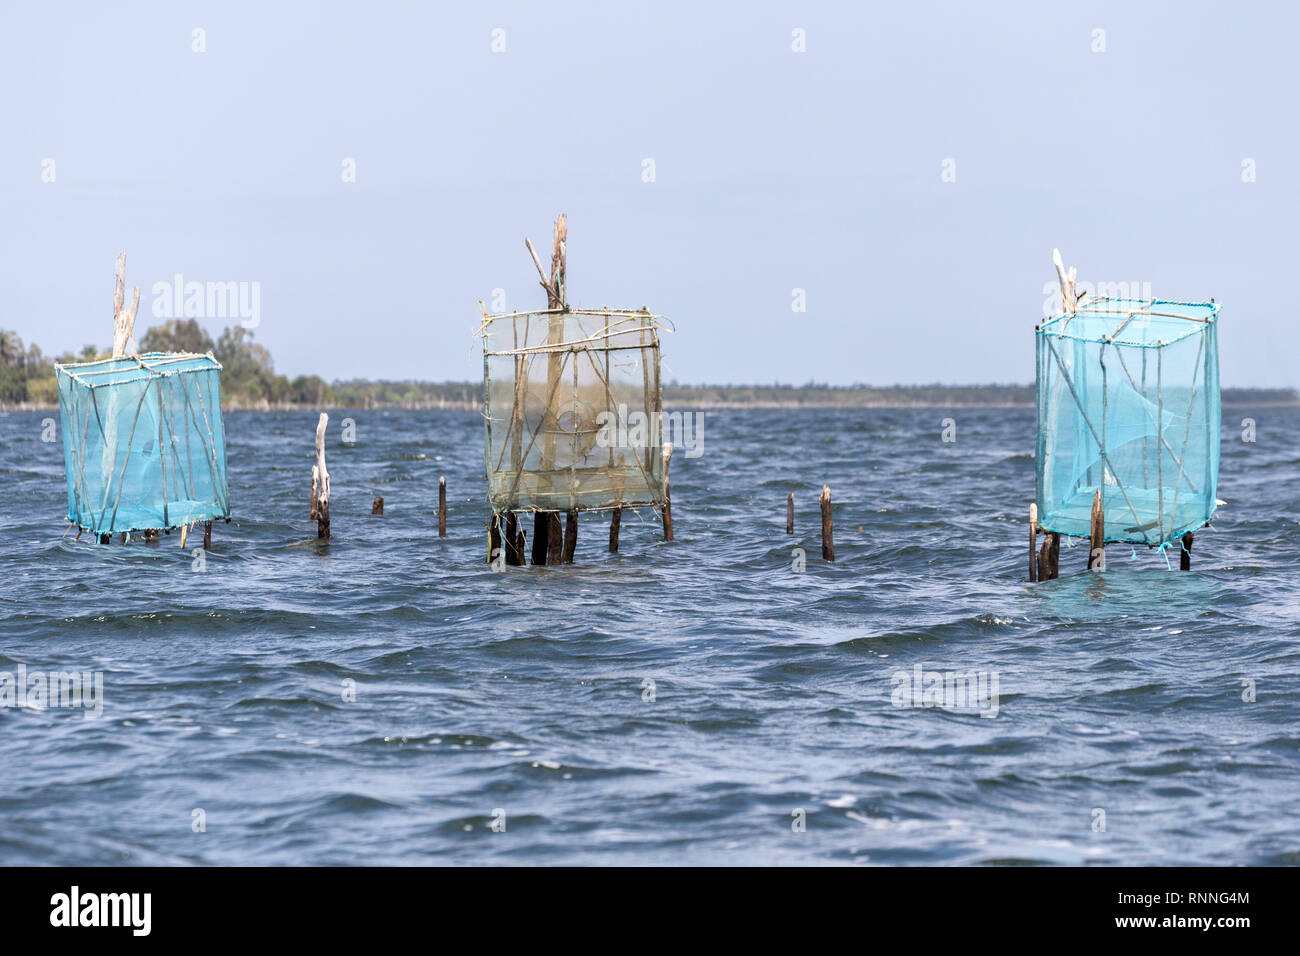 Fishing nets Tamatave from Panglanes Lake Ampitabe during eclipse of the sun Madagascar - Stock Image